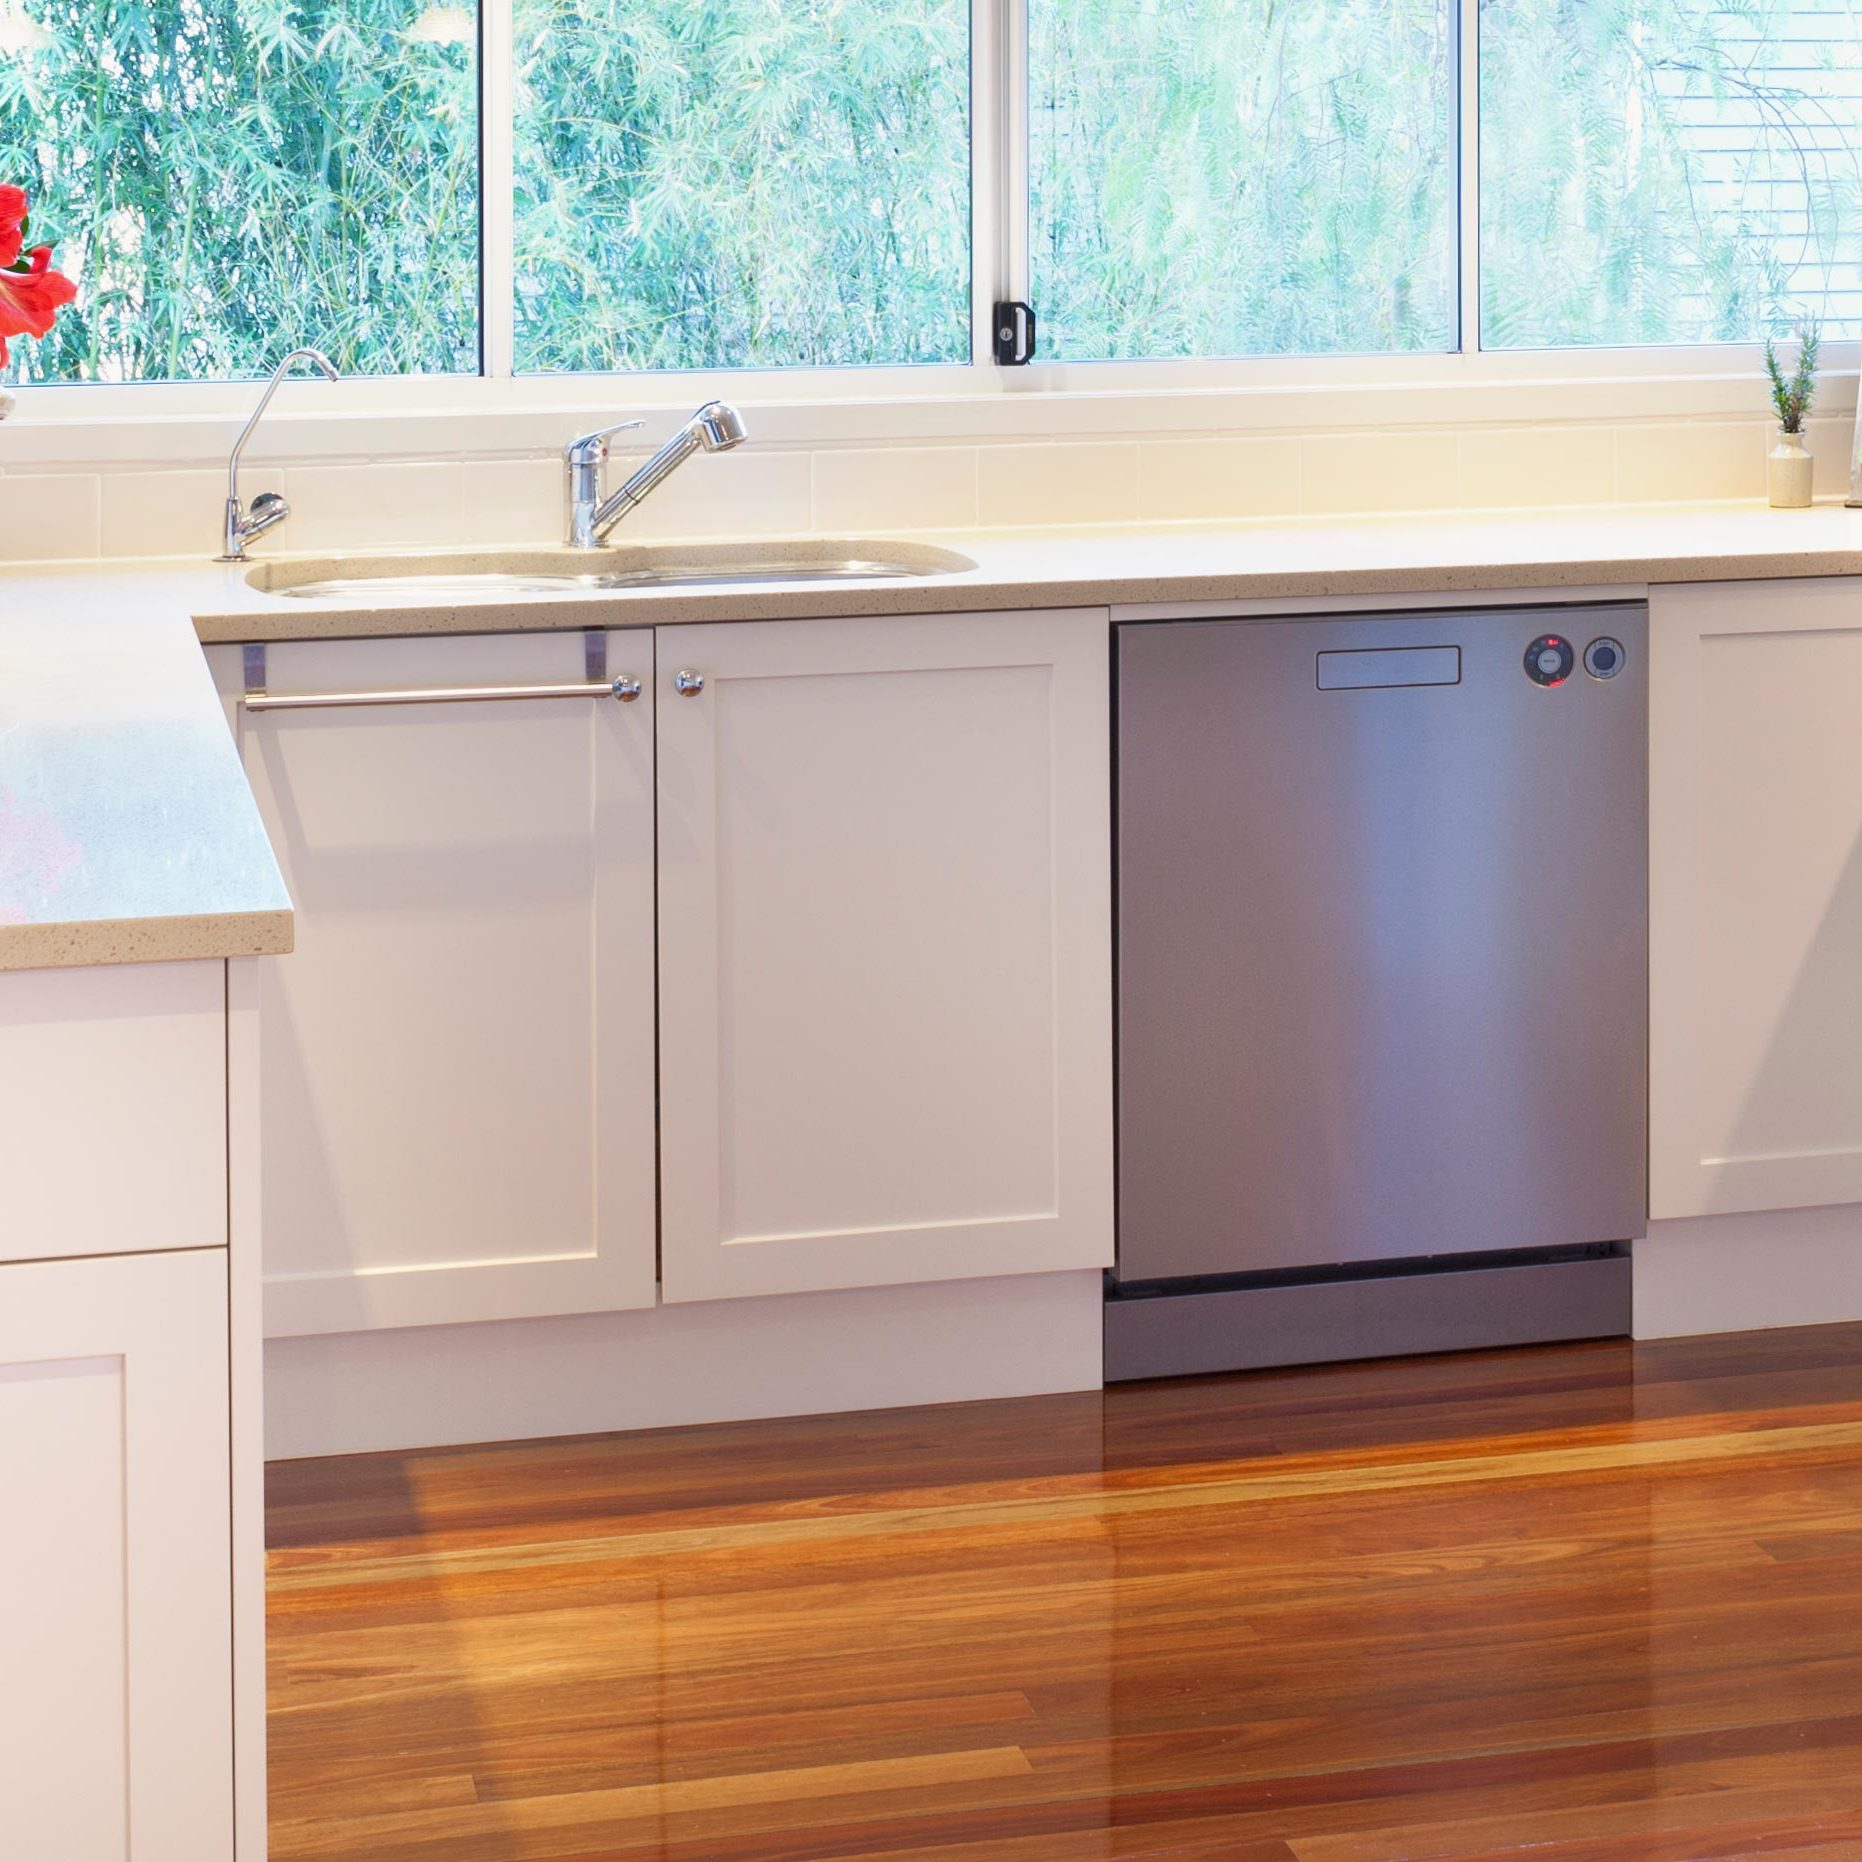 Dishwasher-Installation-Perth